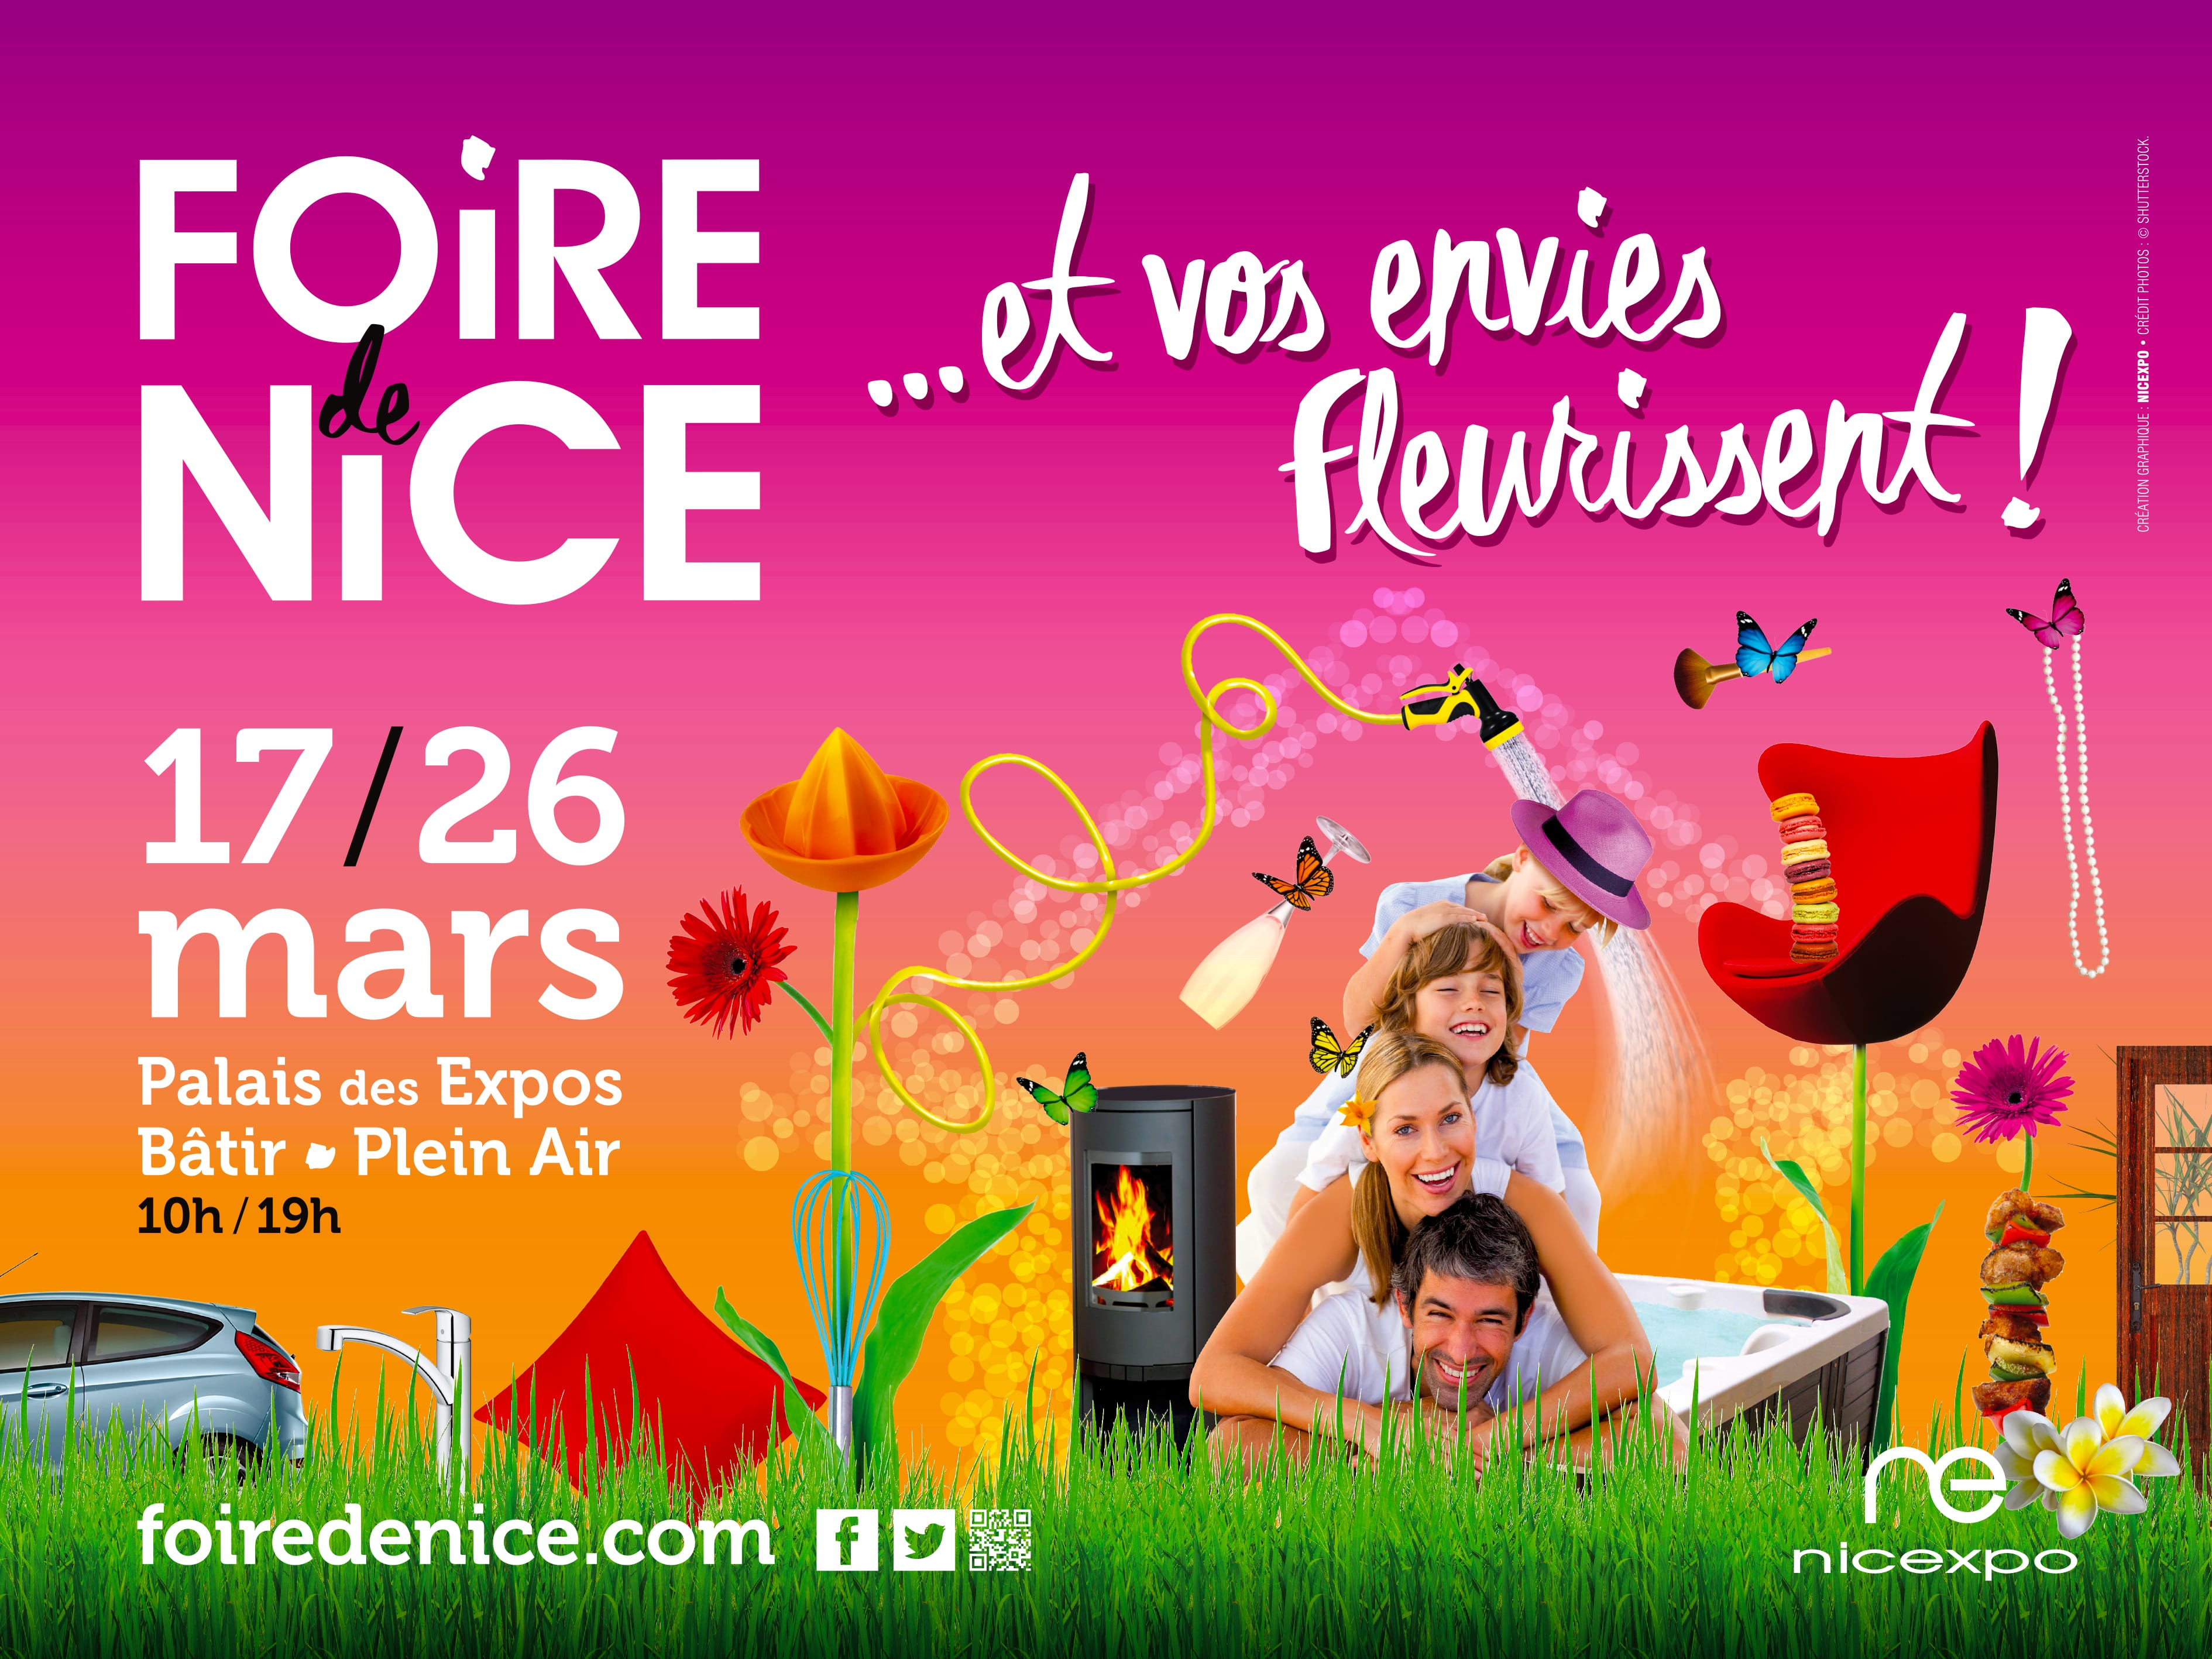 Foire expo bressuire stunning foire expo bressuire with for Foire de niort 2017